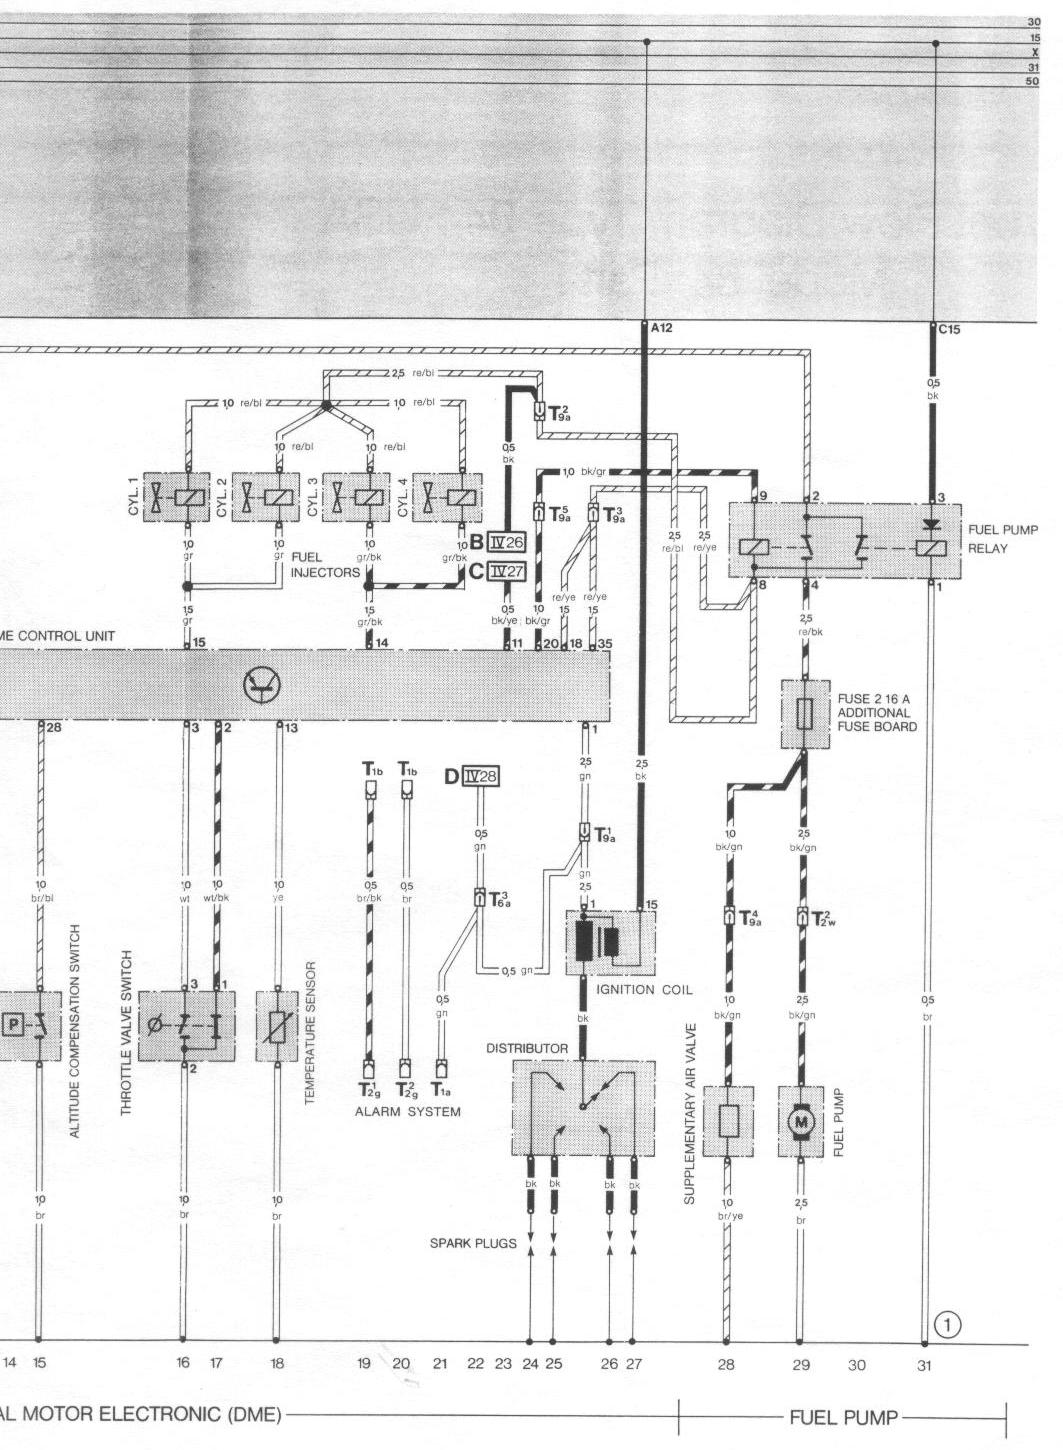 944_84_1_2 pelican parts porsche 924 944 electrical diagrams 1983 porsche 944 fuse box diagram at mifinder.co